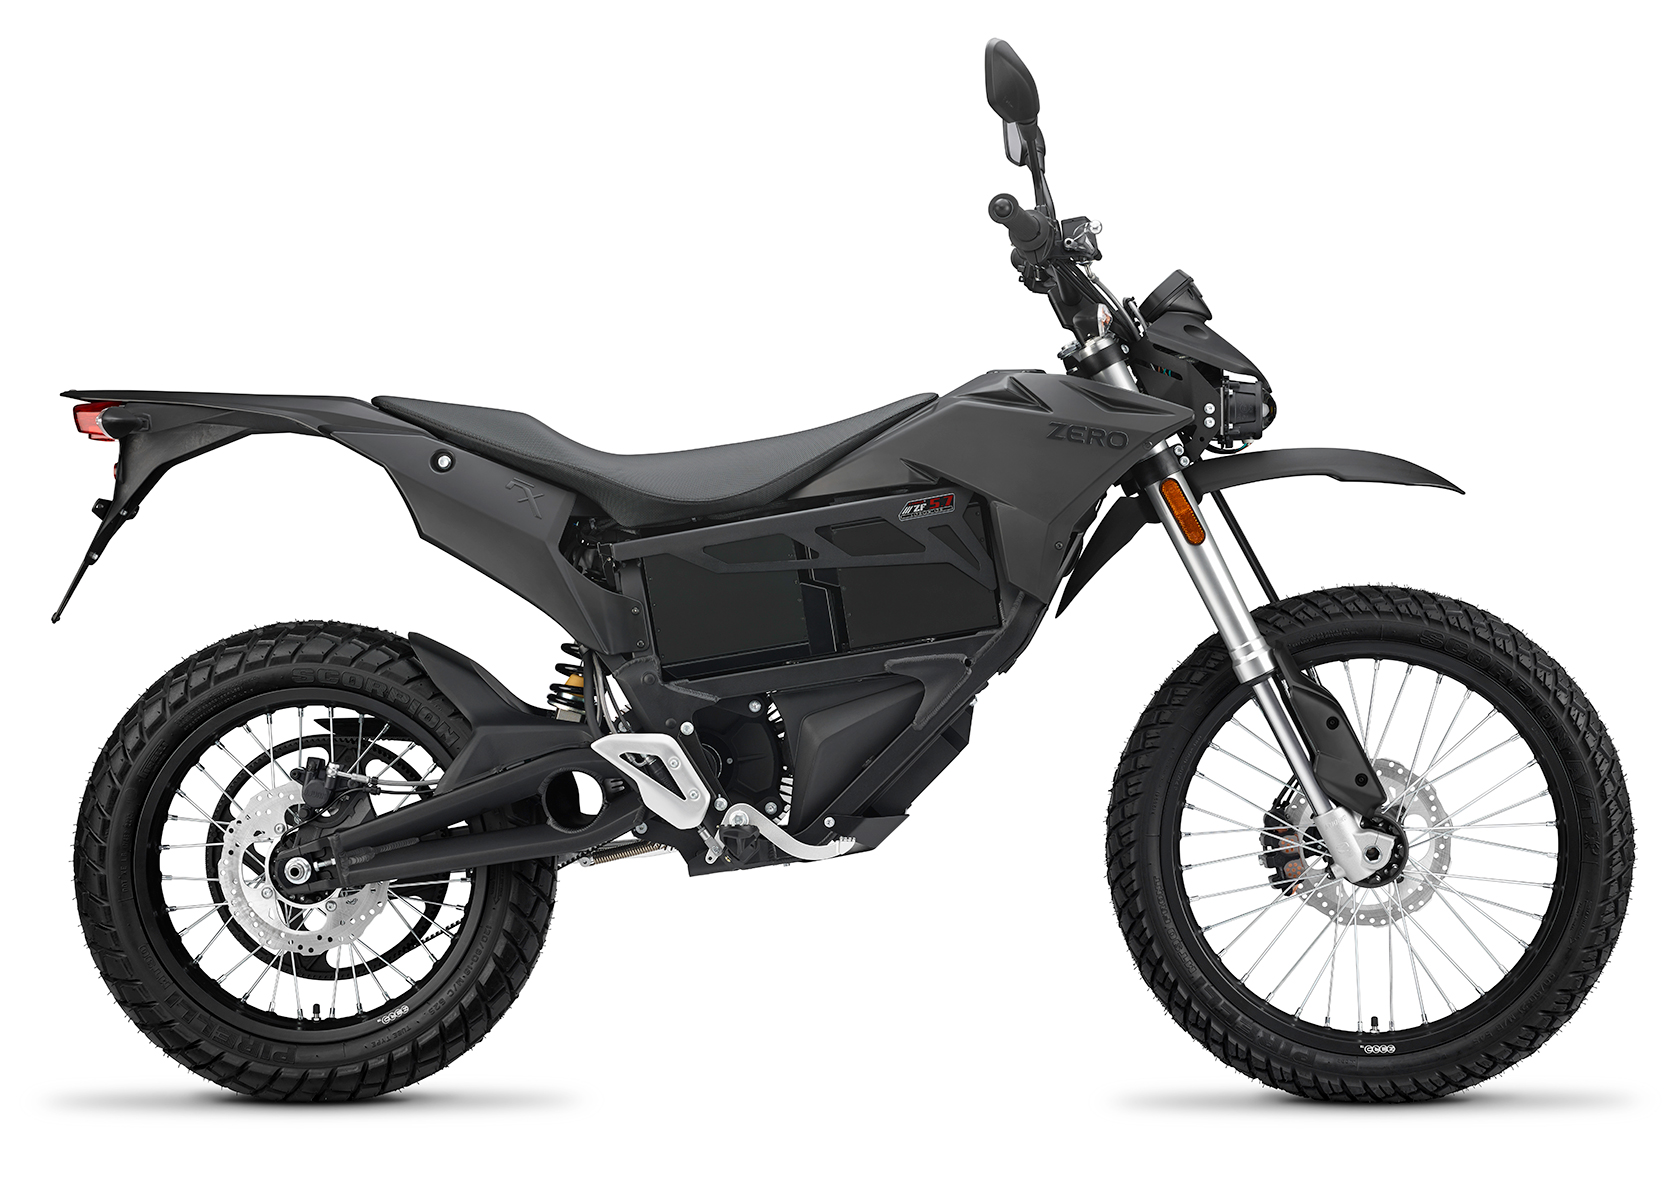 2015 Zero FX Electric Motorcycle: Black Profile Right, White Background